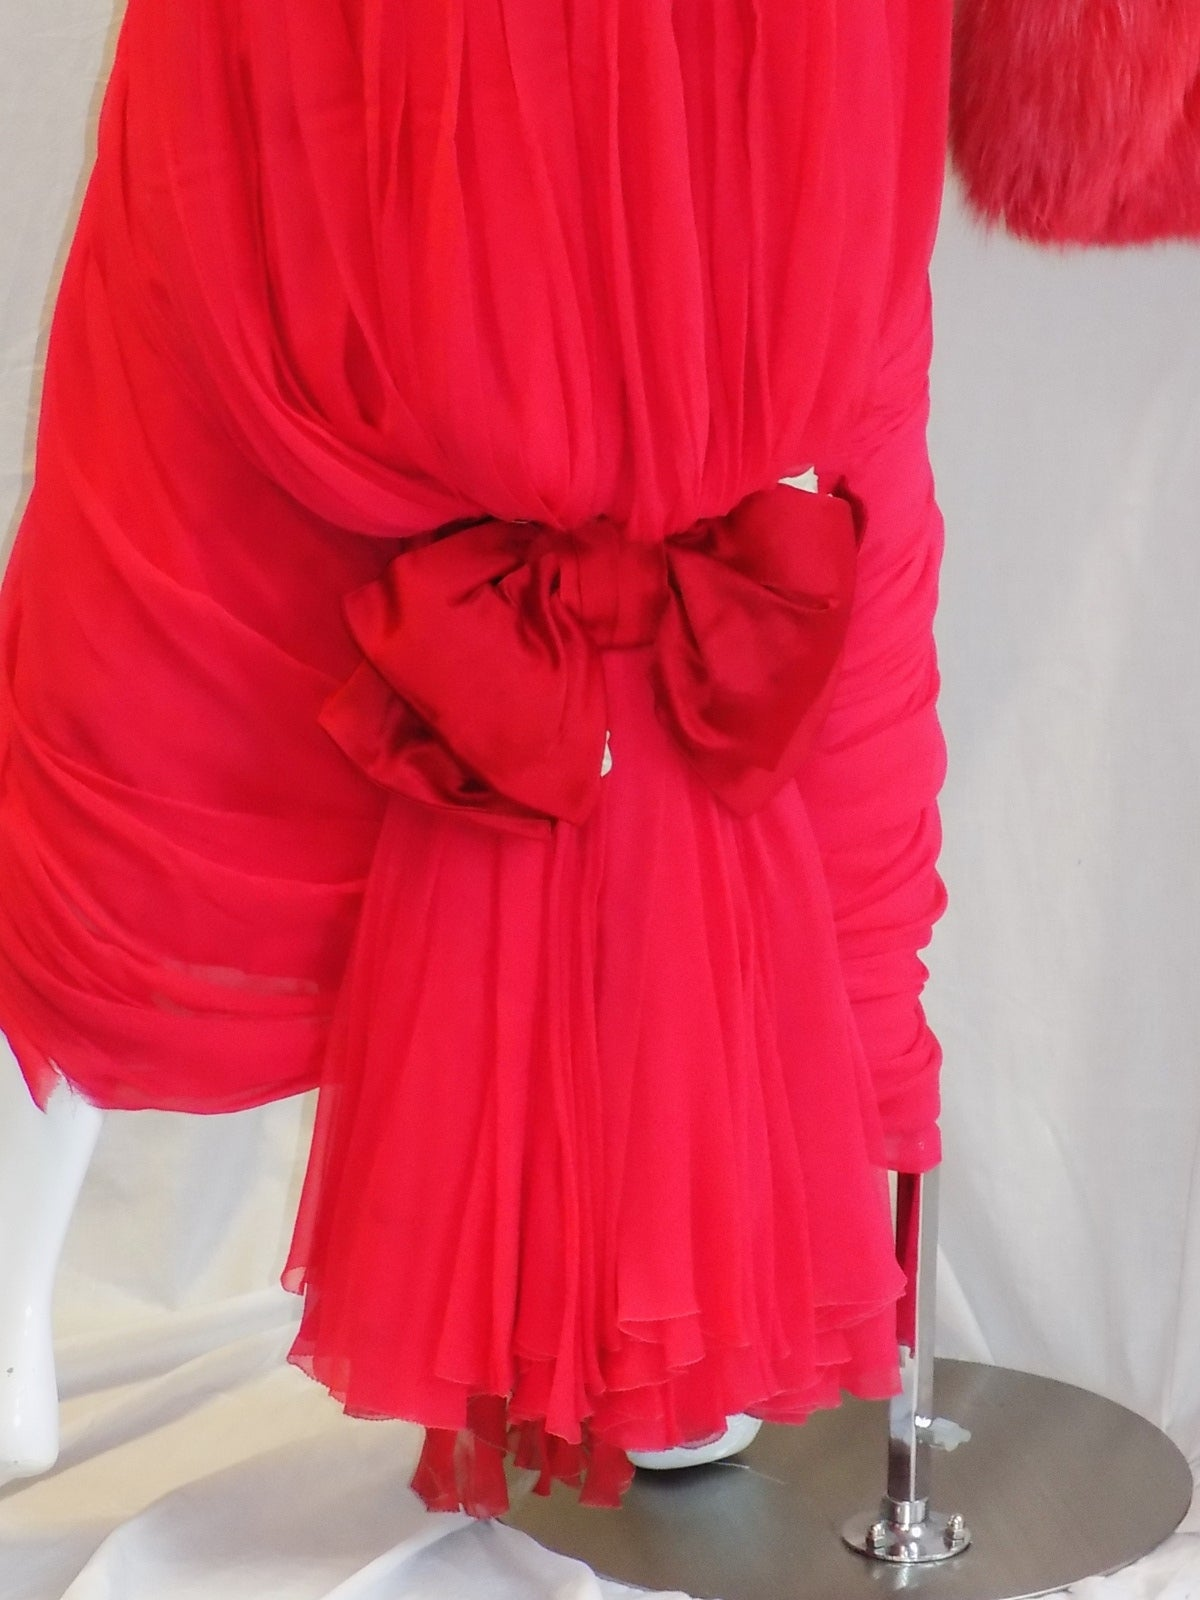 Iconic Jean Dessès Red draped gown with Fox fur stole 1950's For Sale 3